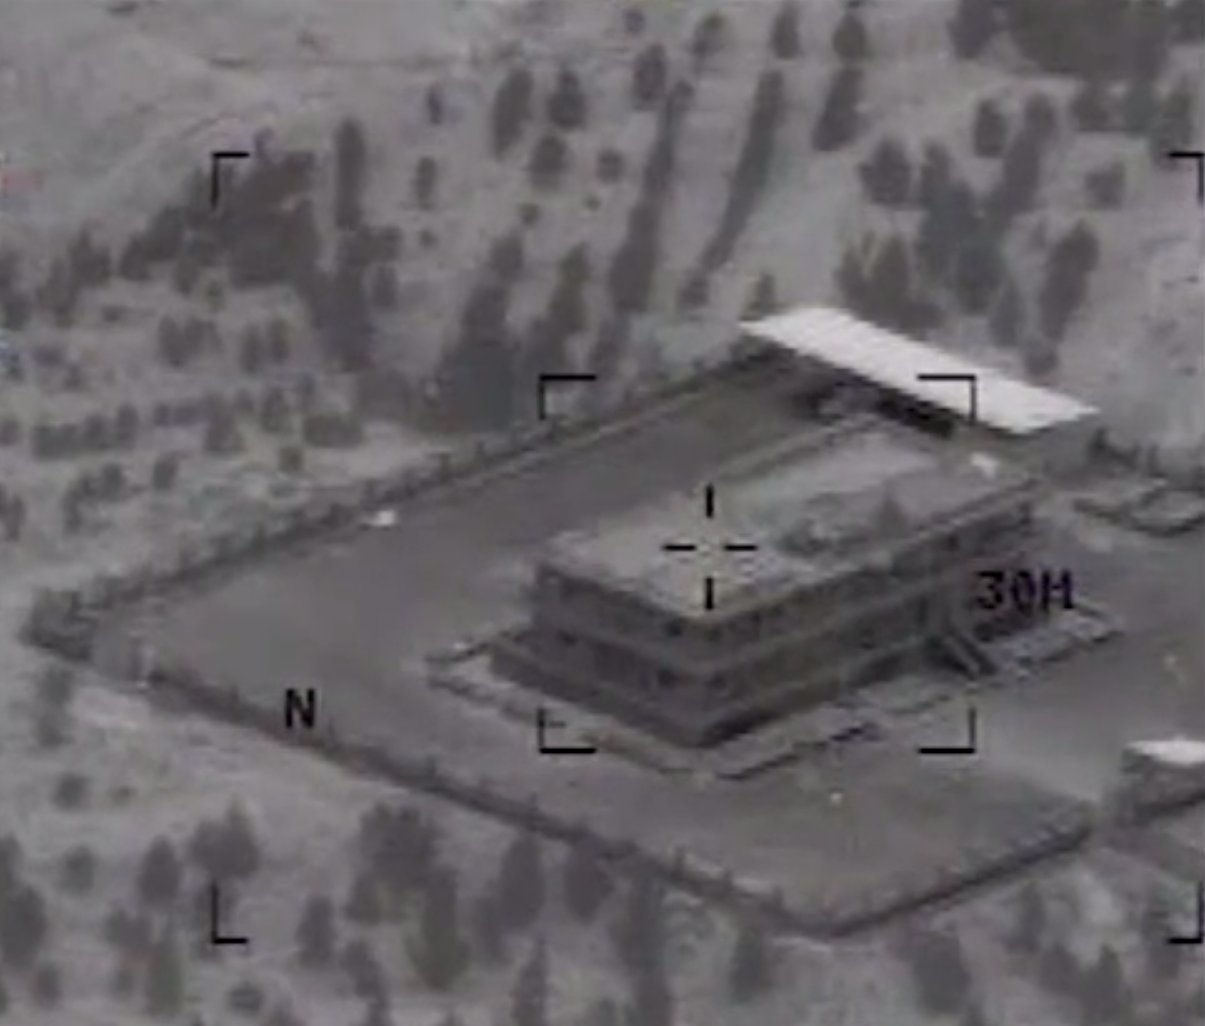 A screengrab taken from videos released by the U.S. Central Command of the airstrikes shows the before-and-after of a strike against an ISIS compound northwest of Raqqa.